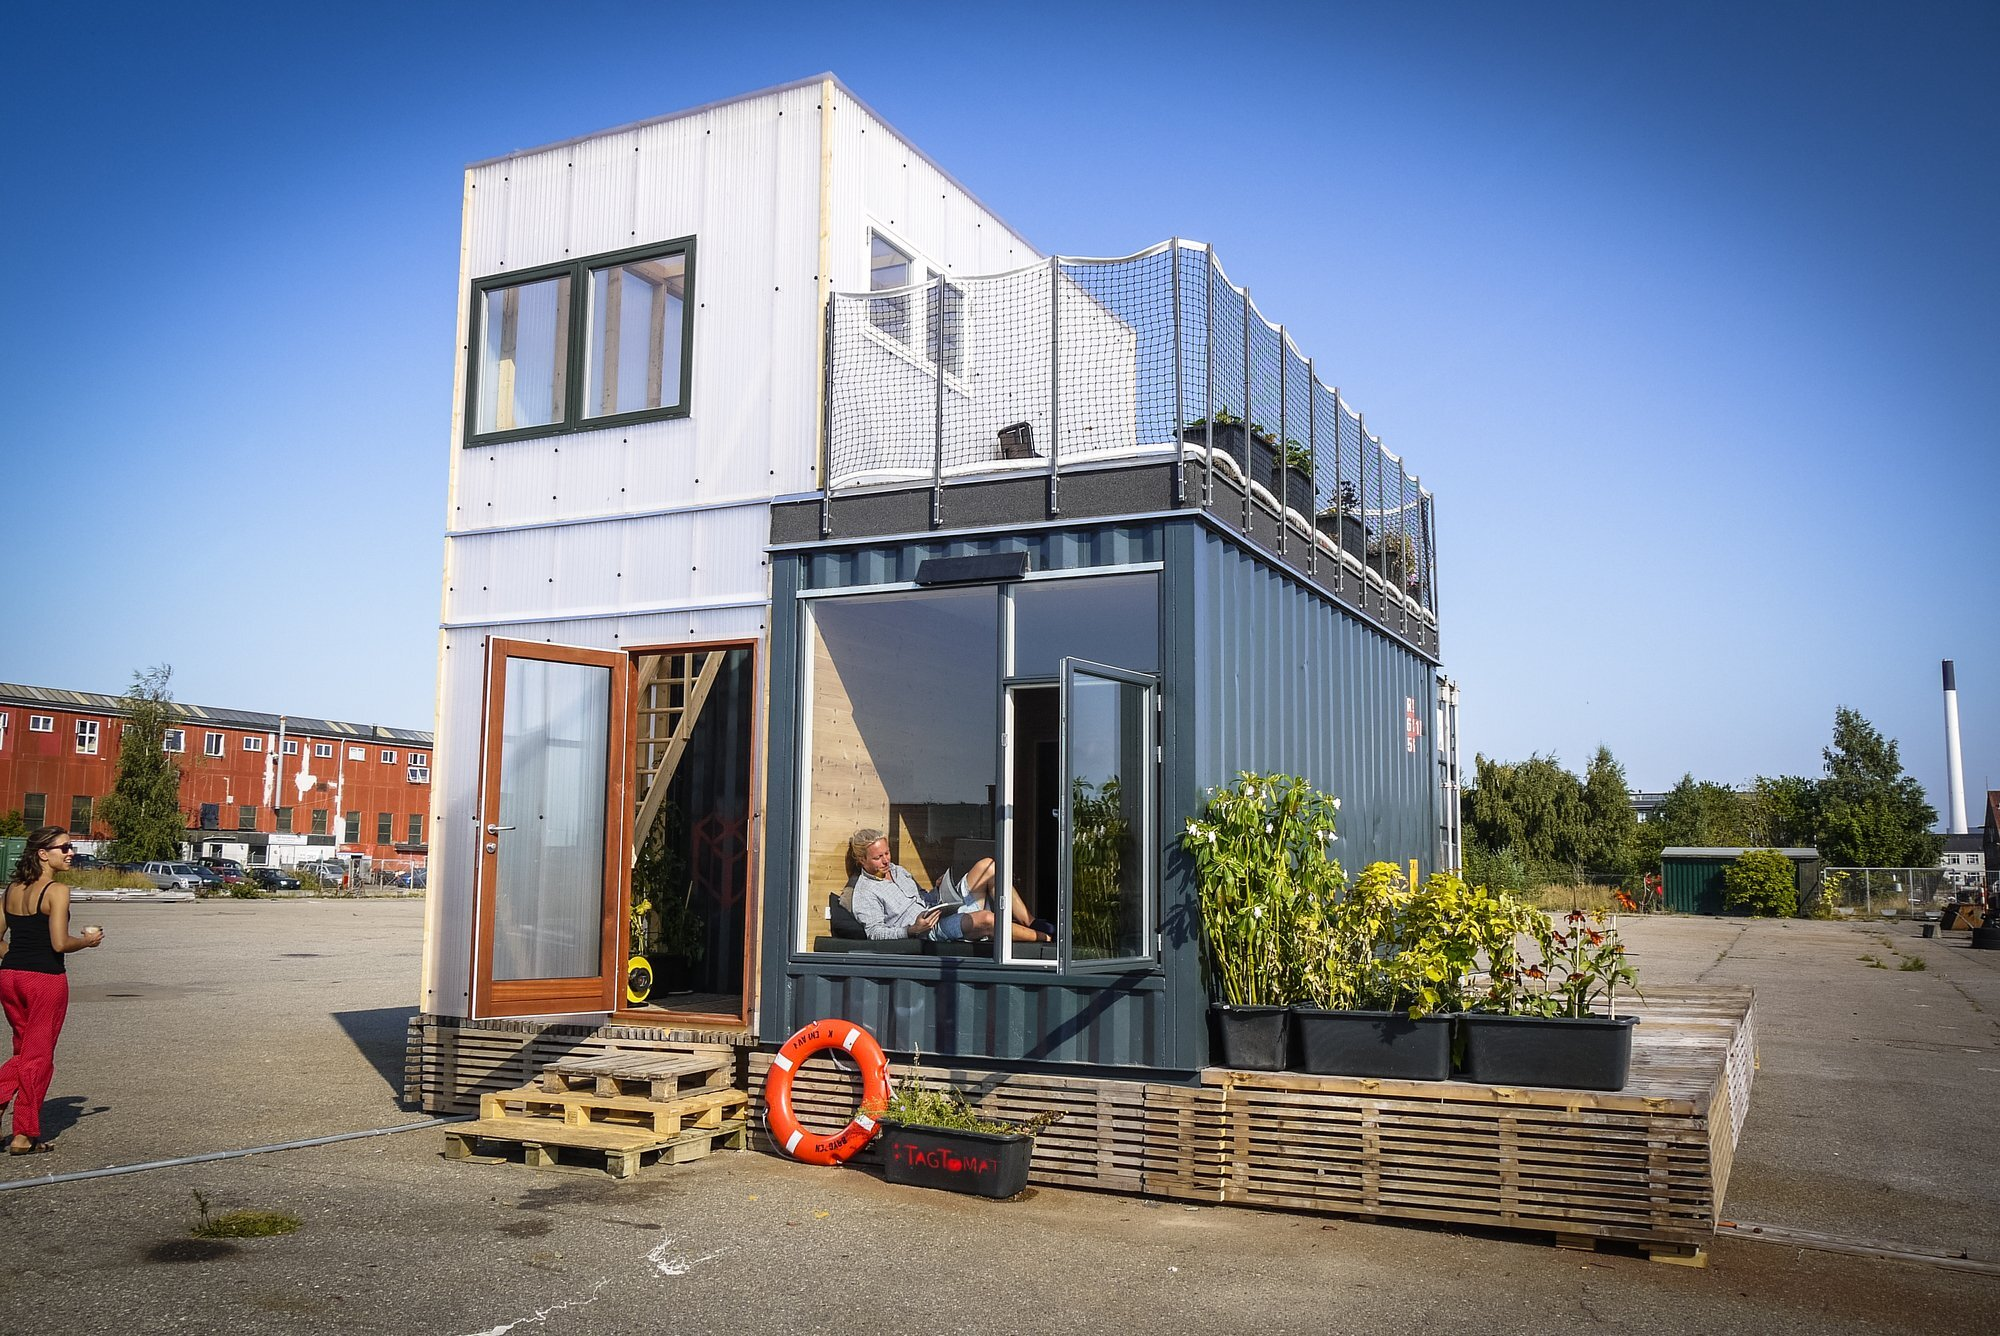 Container Haus Villa A Student Village Made Of Container Homes In Copenhagen By Cph